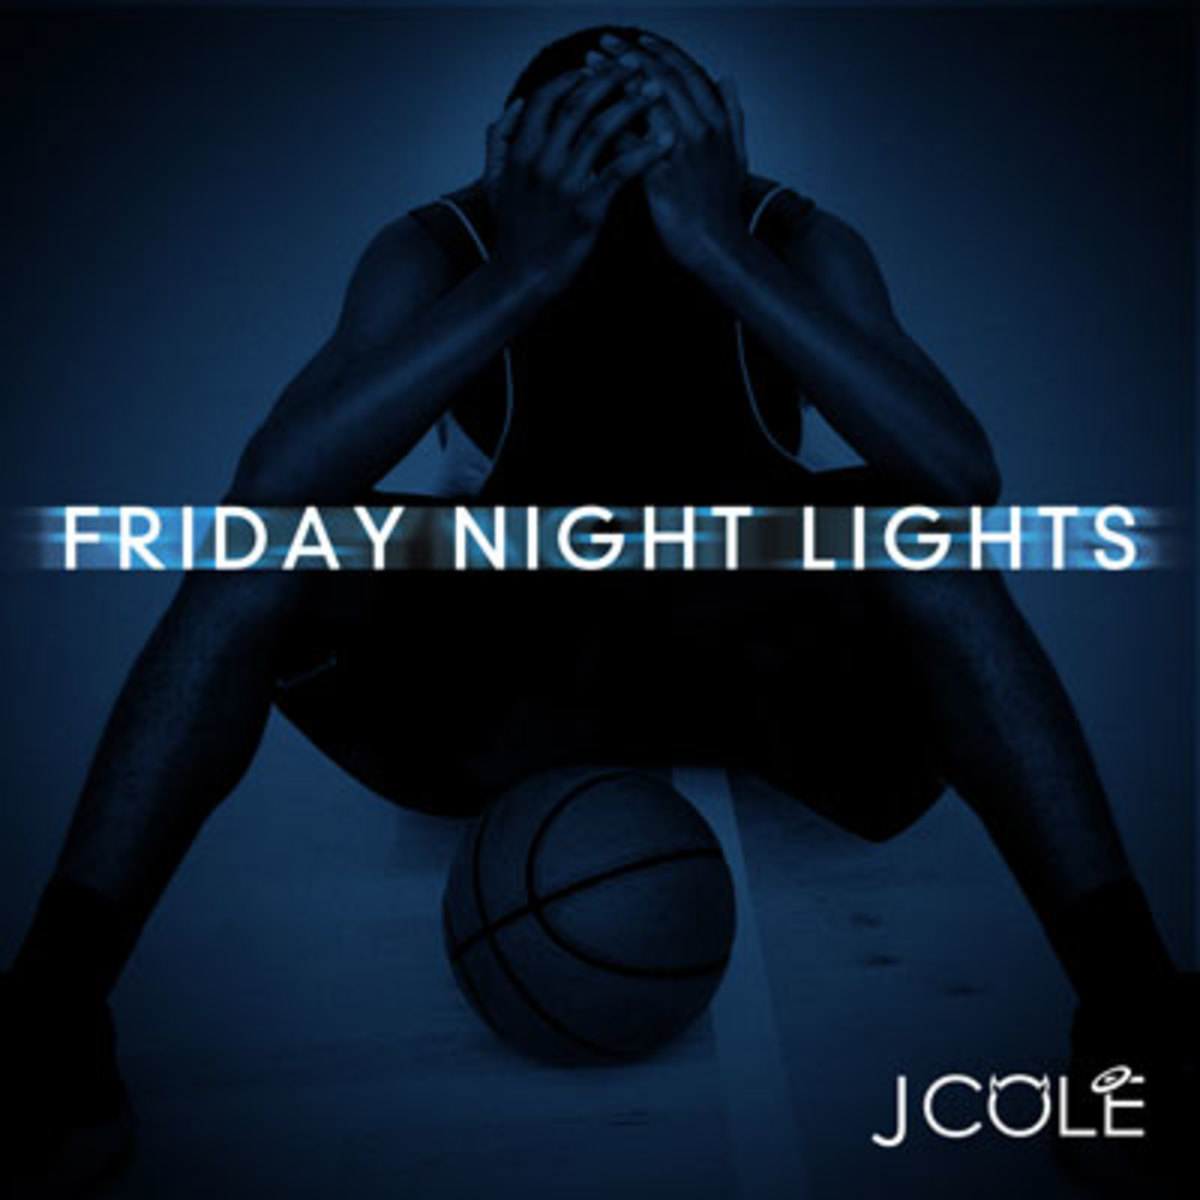 jcole-fridaynightlights2.jpg